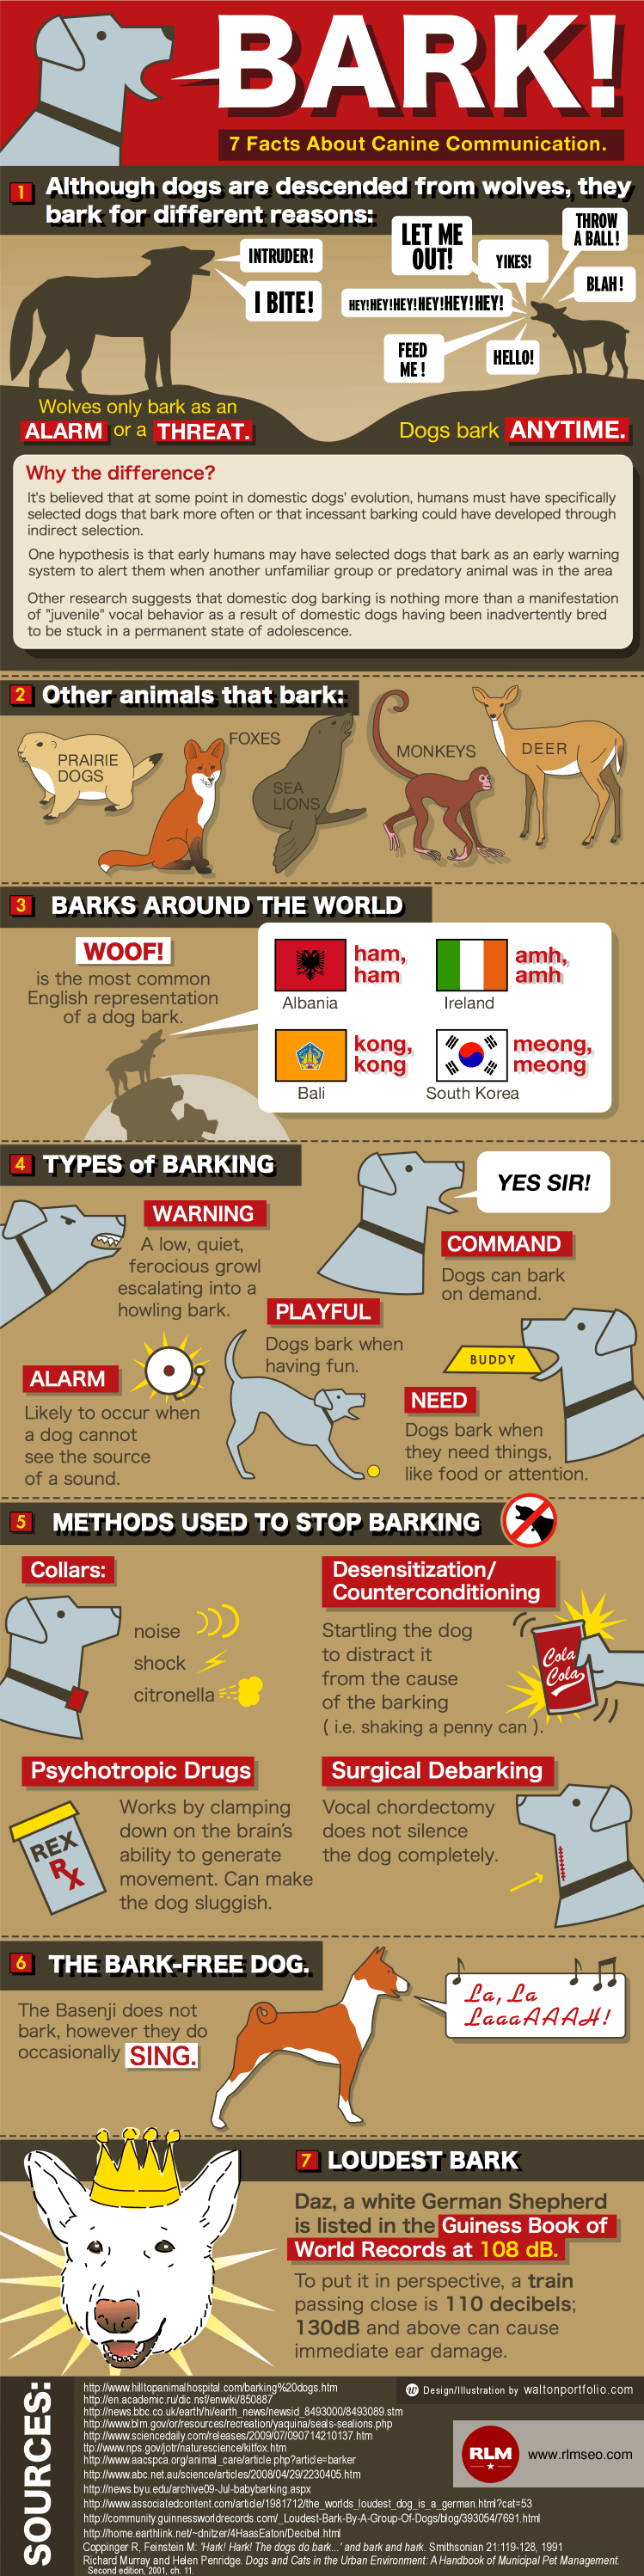 dog bark infographic